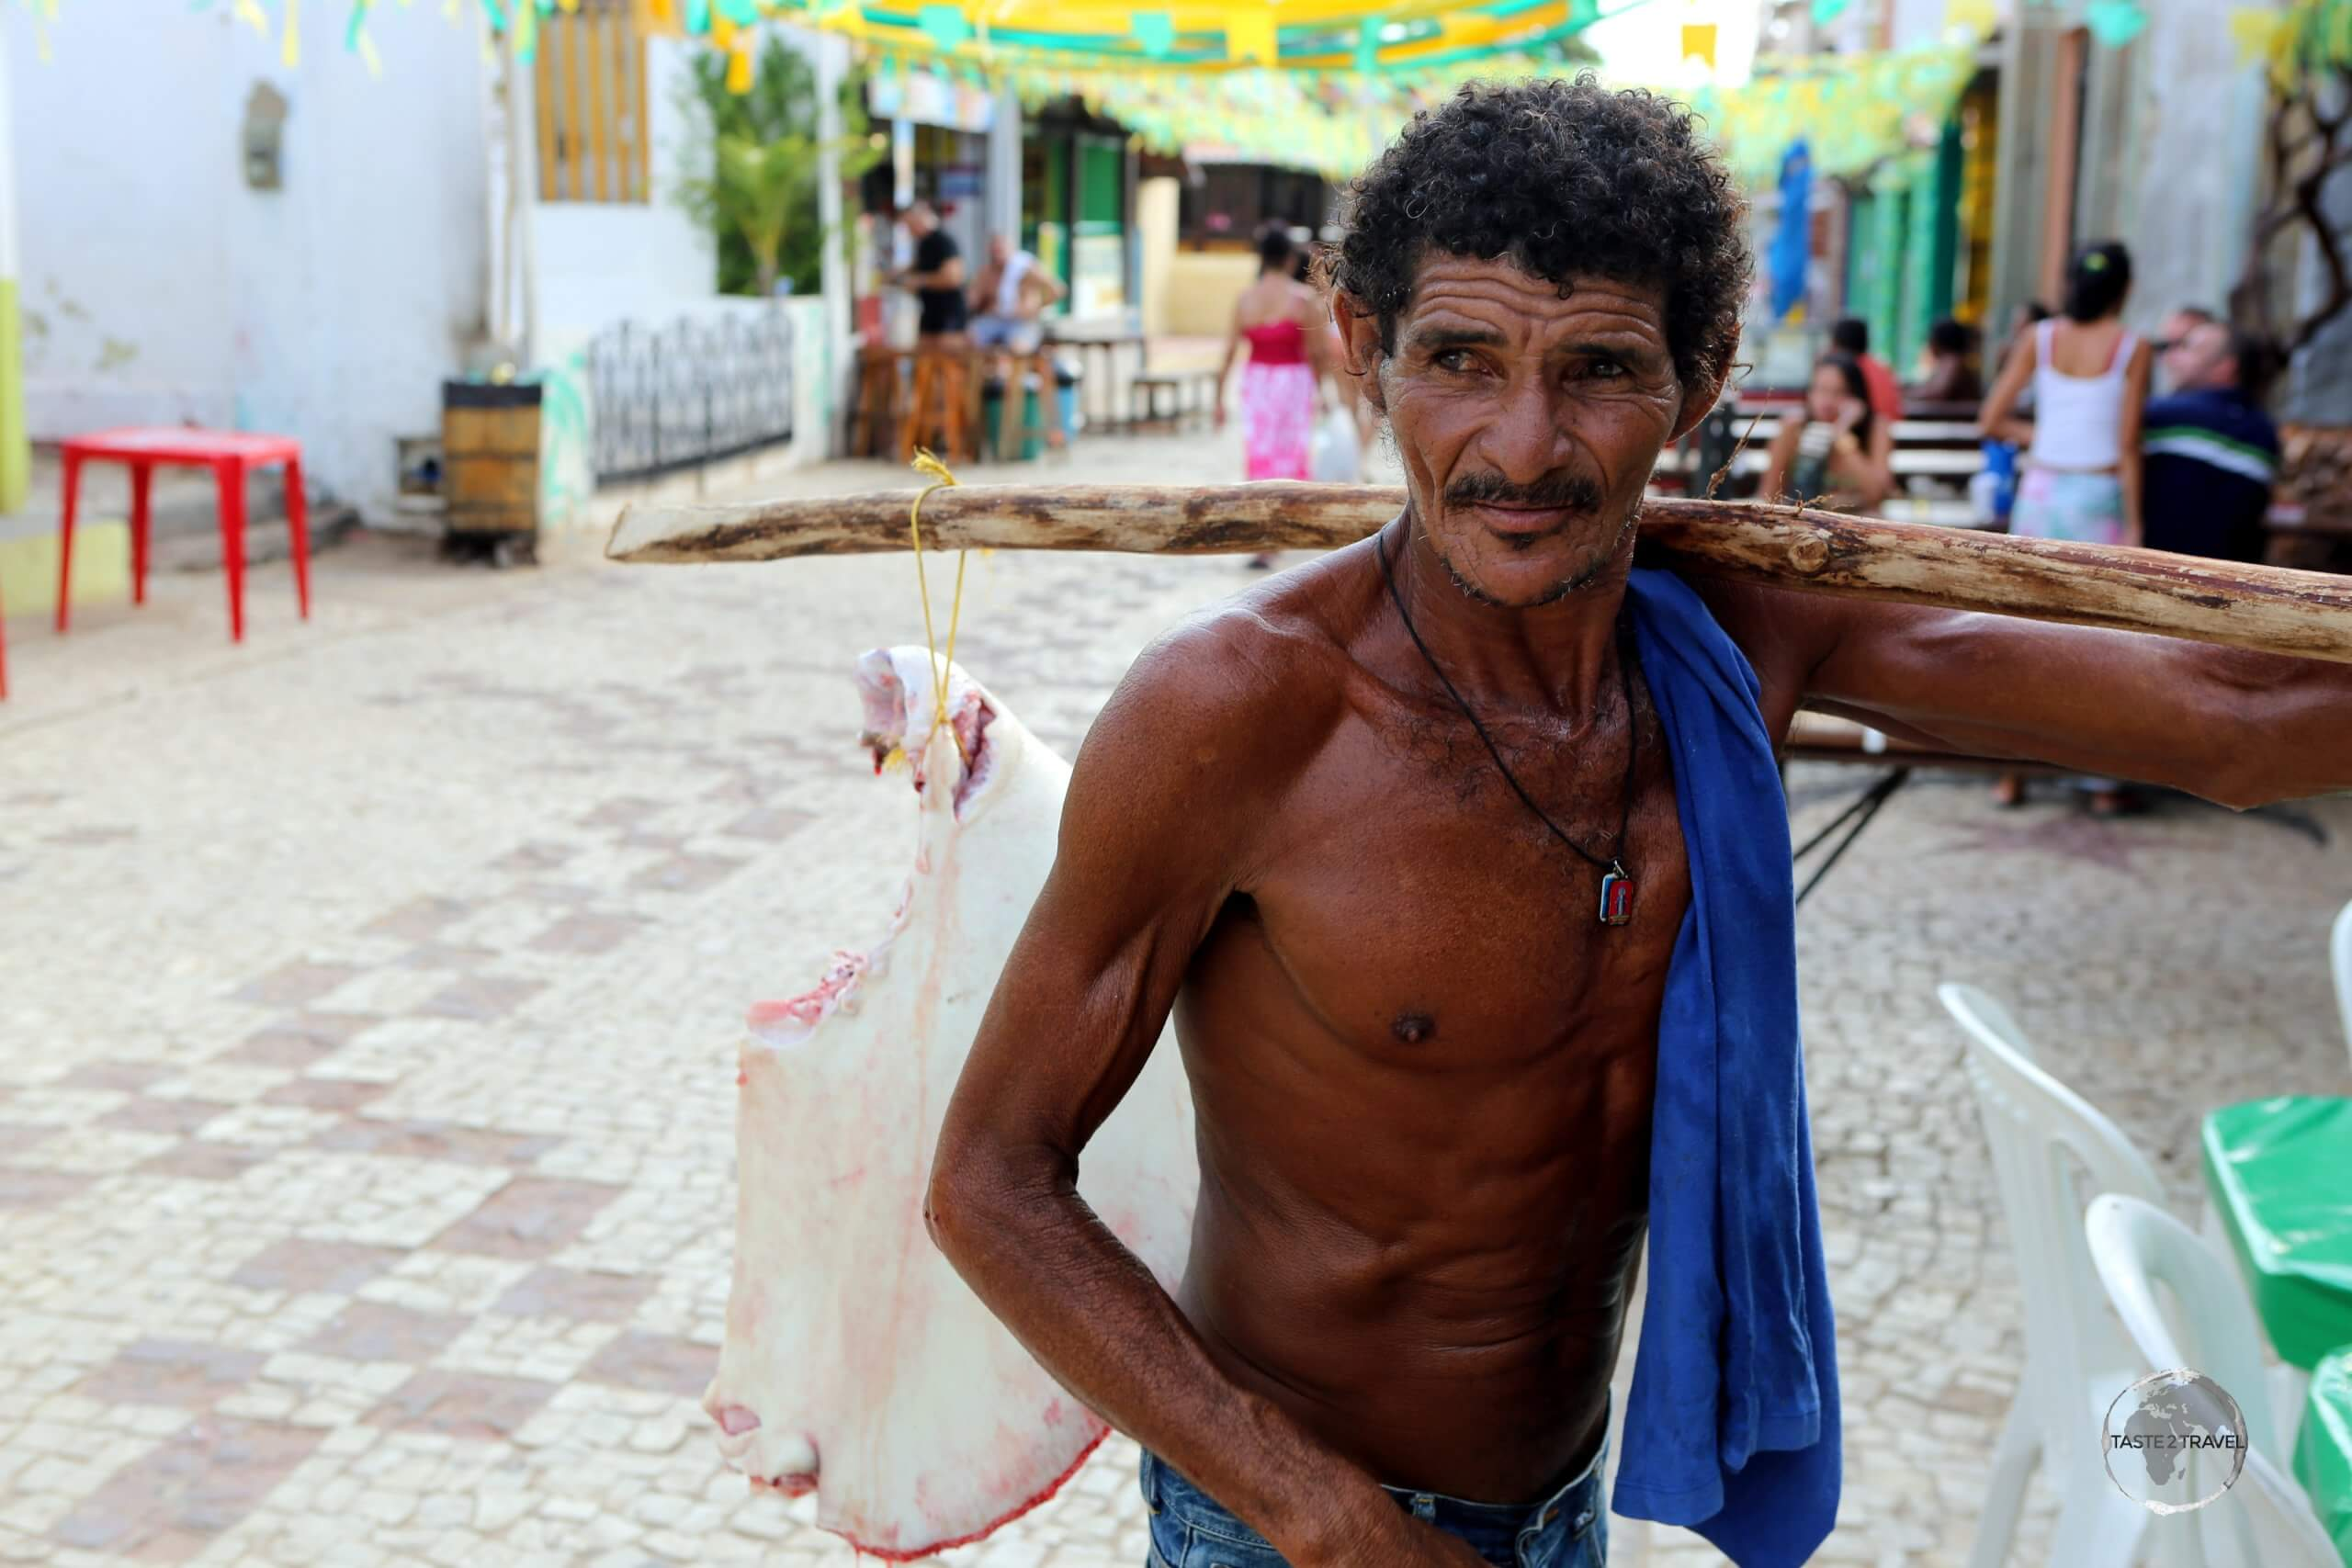 A local fisherman selling part of a stingray in the old town of Canoa Quebrada, Ceará state, Brazil.